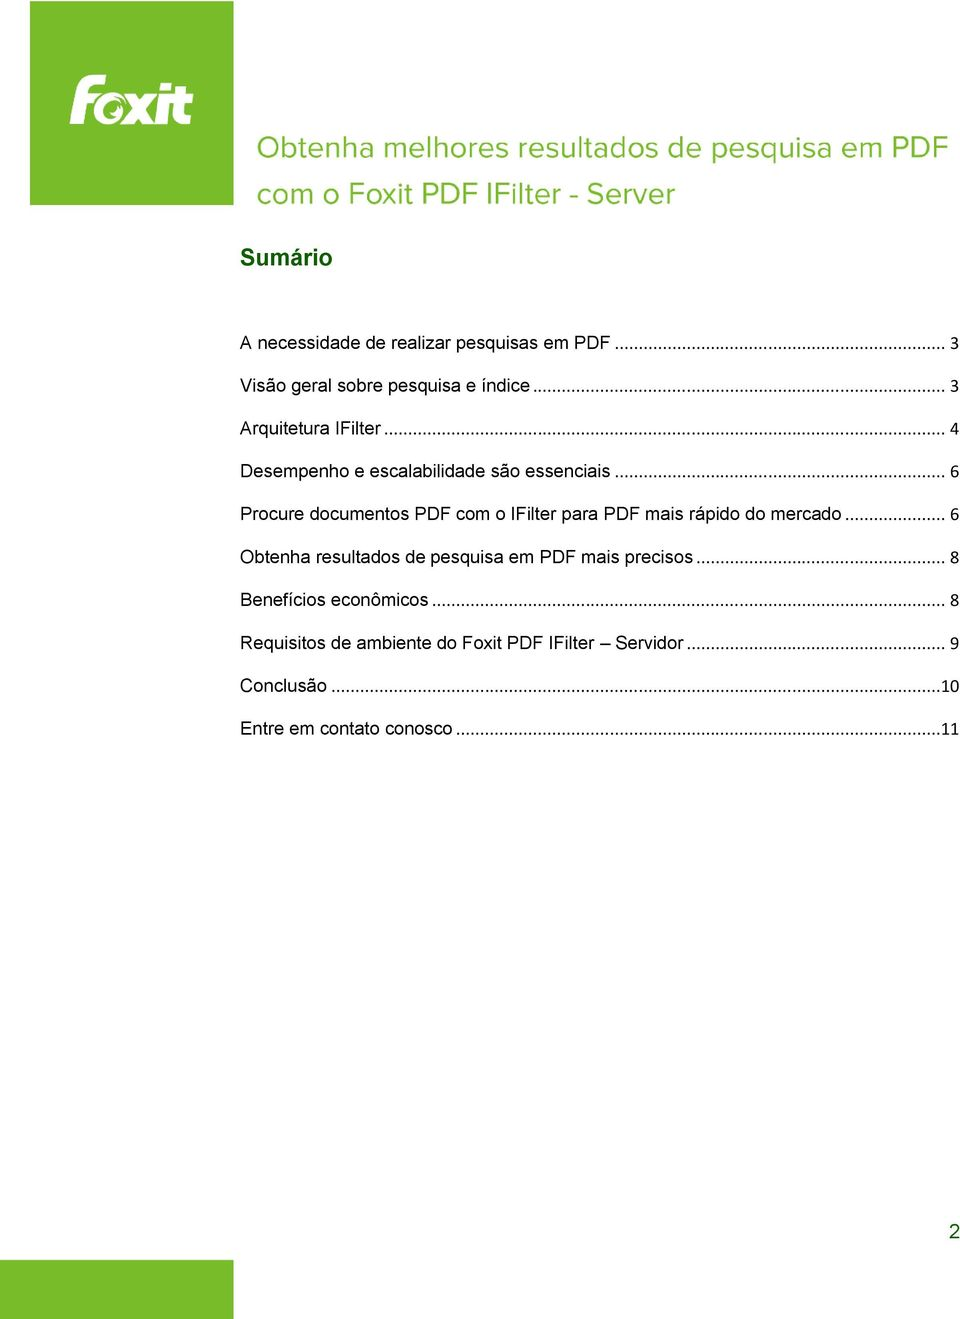 .. 6 Procure documentos PDF com o IFilter para PDF mais rápido do mercado.